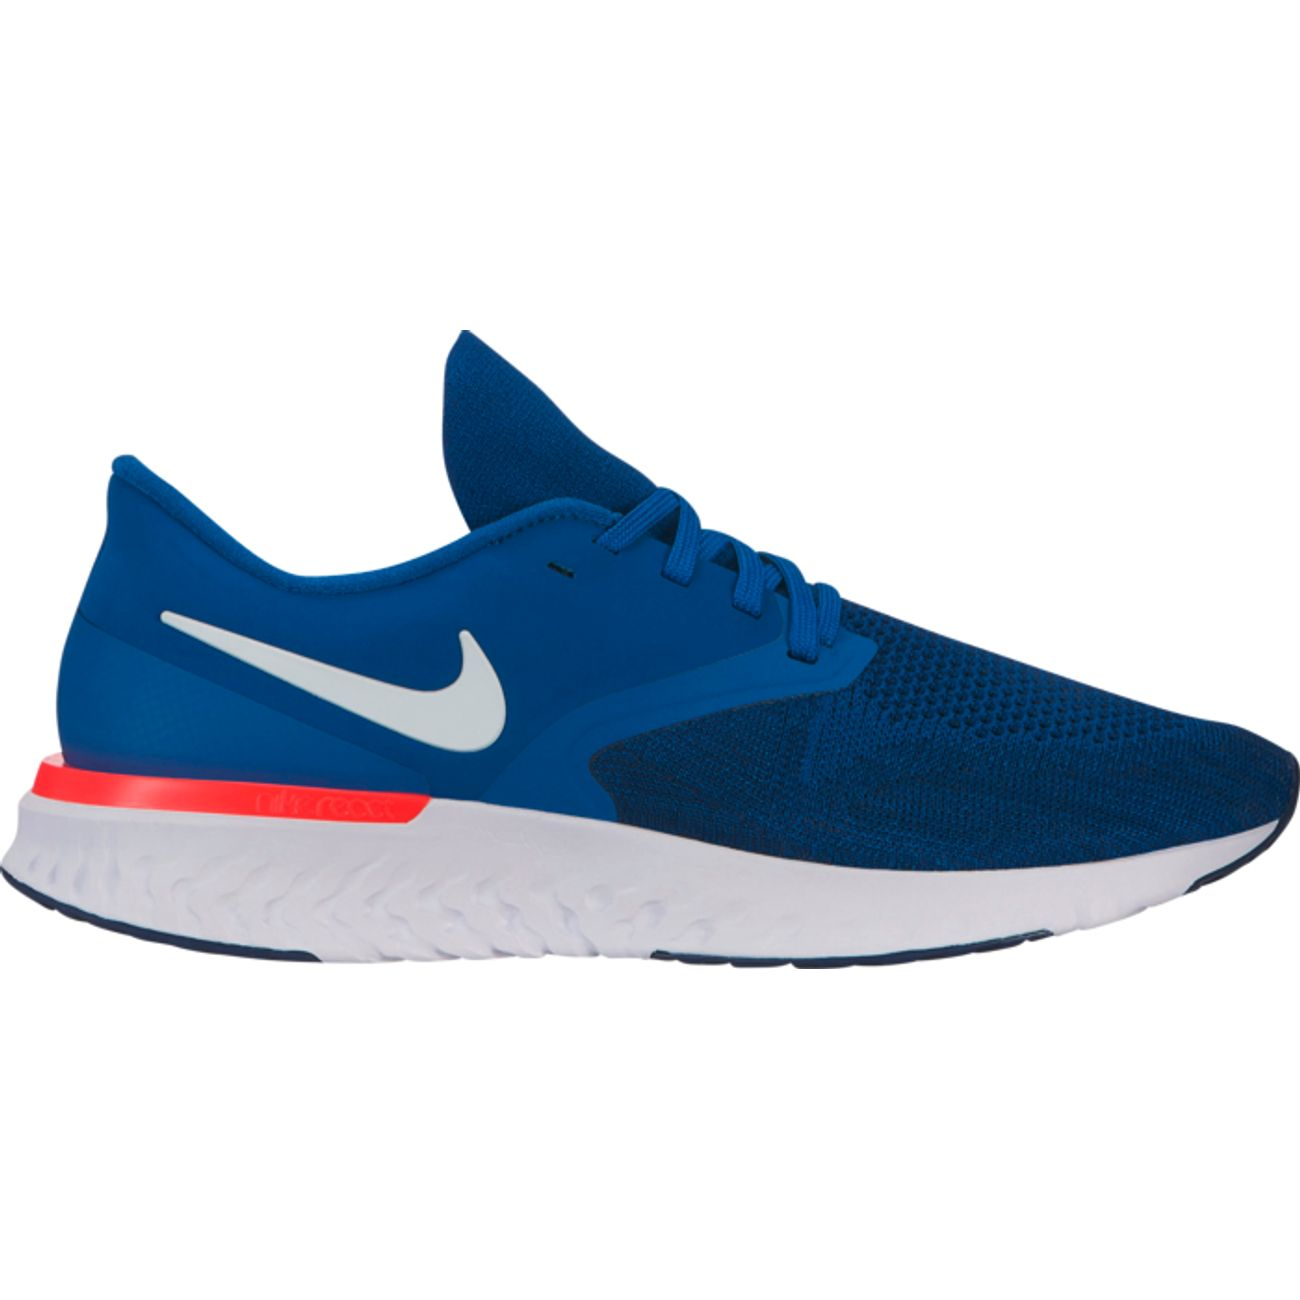 CHAUSSURES BASSES running homme NIKE ODYSSEY REACT 2 FLYKNIT